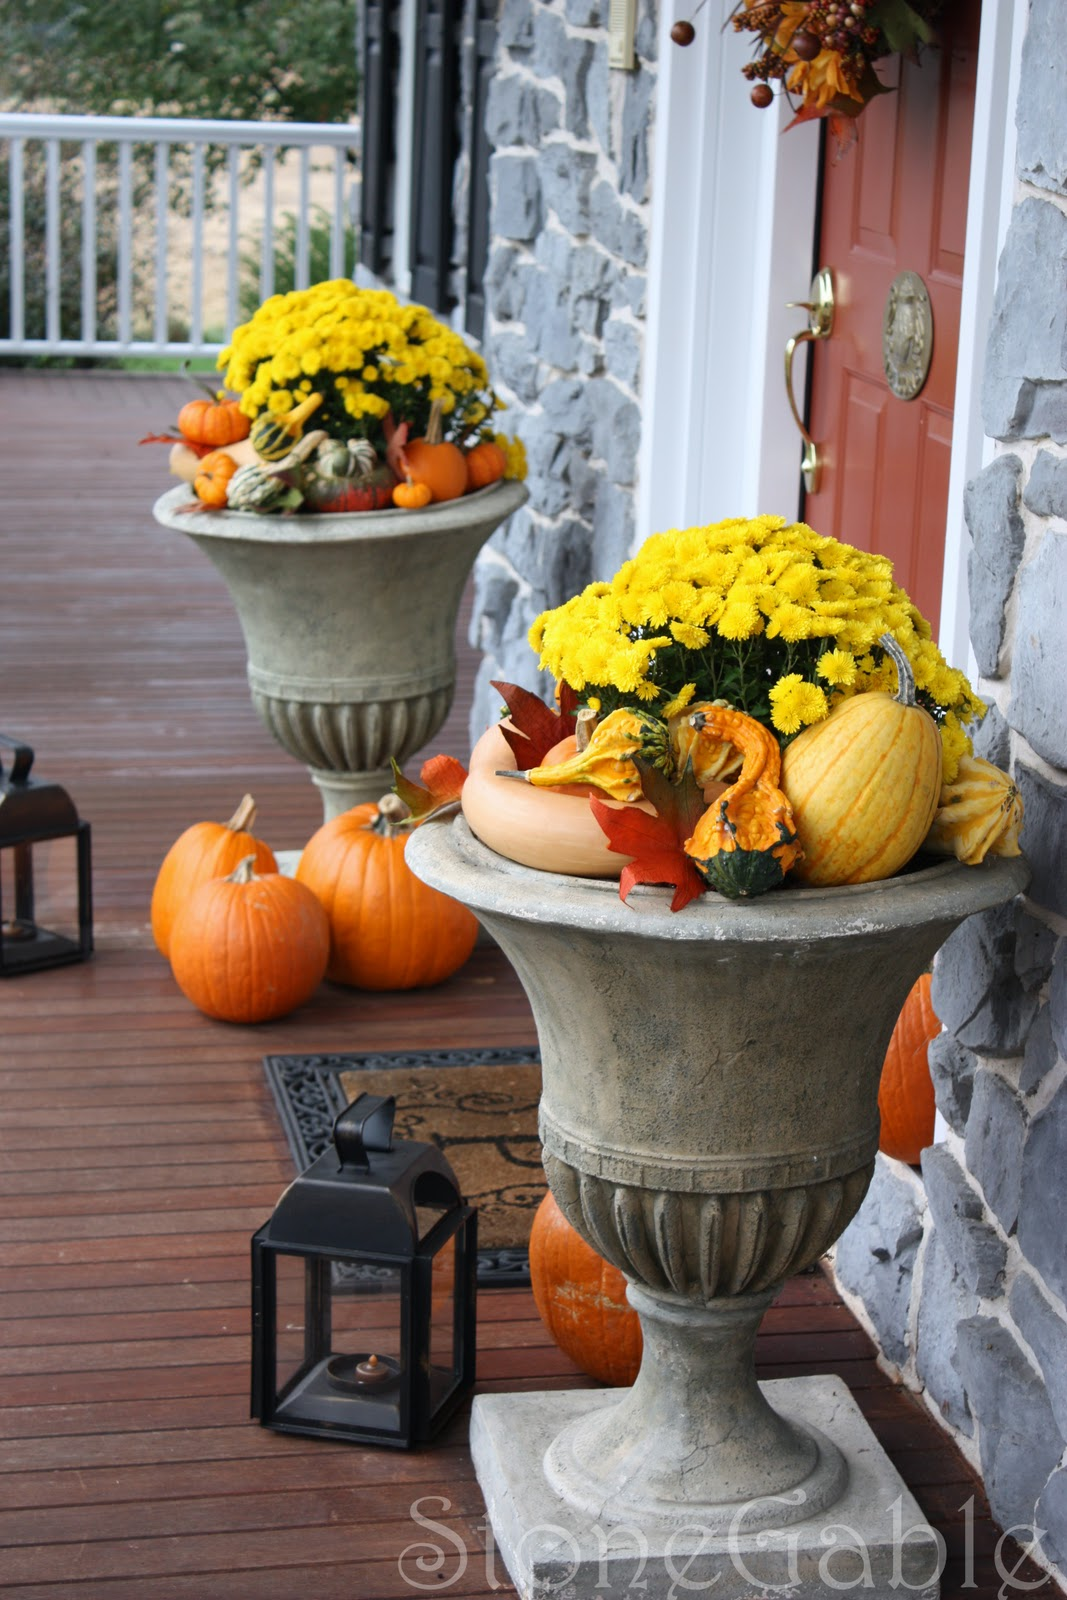 Outdoor fall decor stonegable for Pictures of fall decorations for outdoors